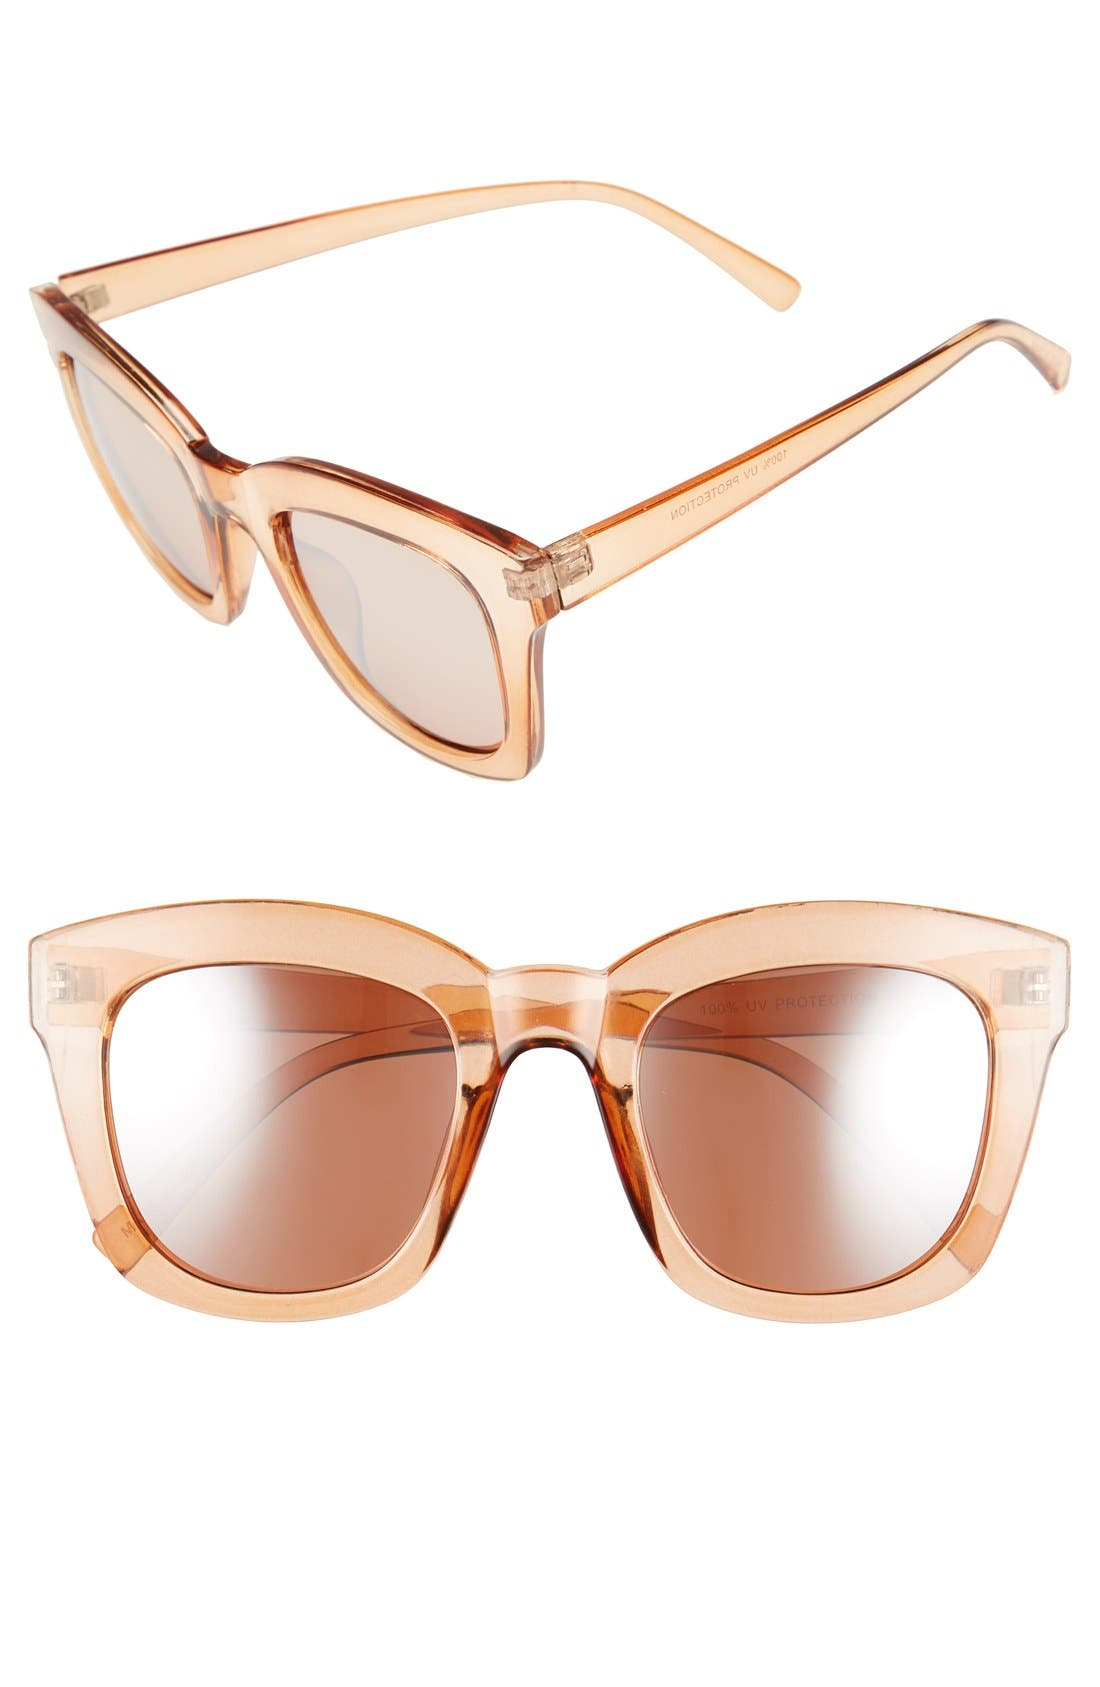 Main Image - BP. 50mm Mirror Square Sunglasses